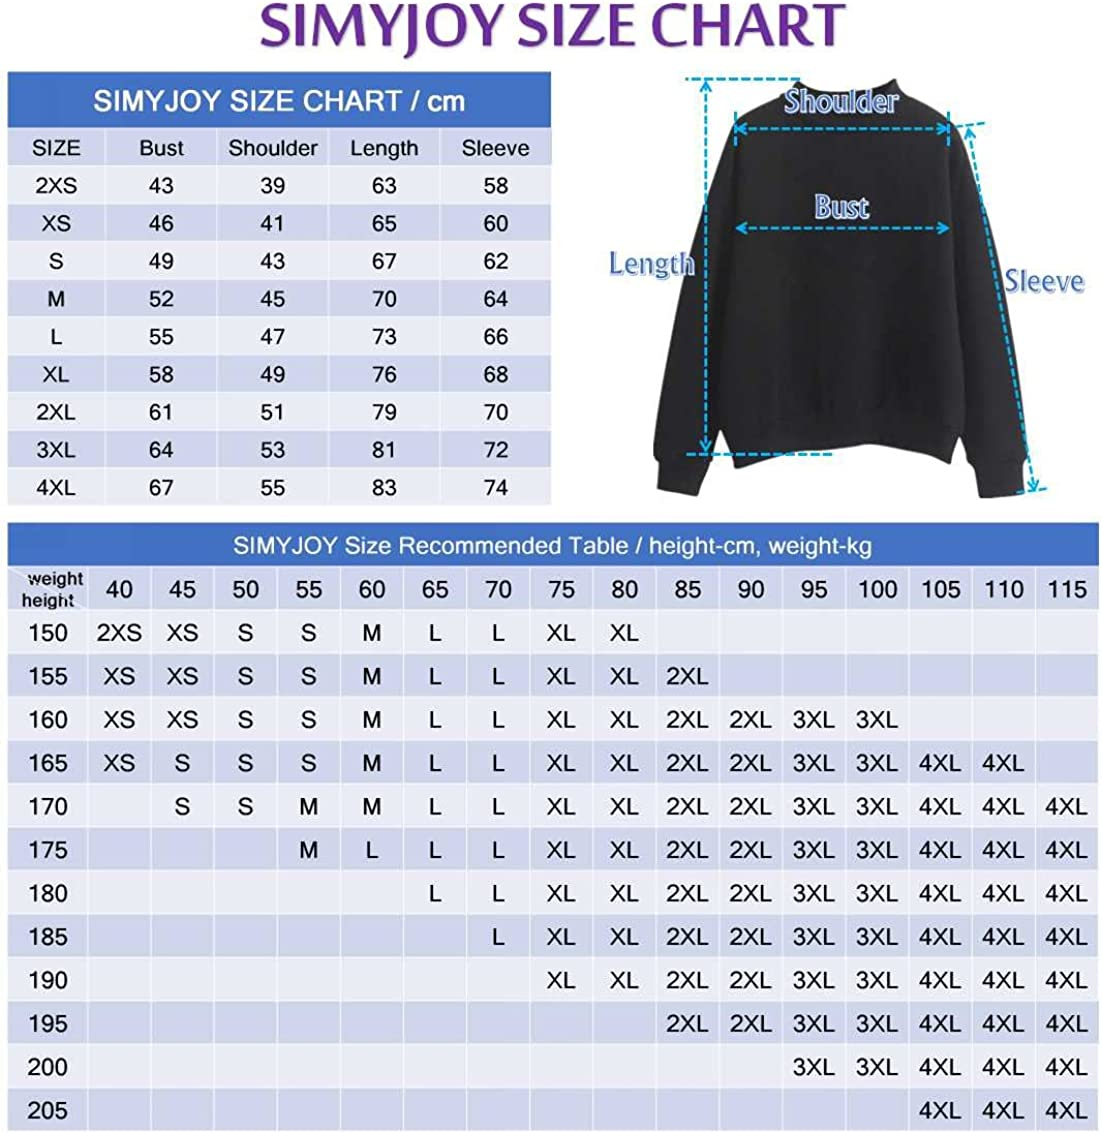 SIMYJOY Femme Korea Pop Fans Sweats Korea Pop Fake Love Pulls Fille Kpop Cool Harajuku Sweatshirt Loose Fitting Top